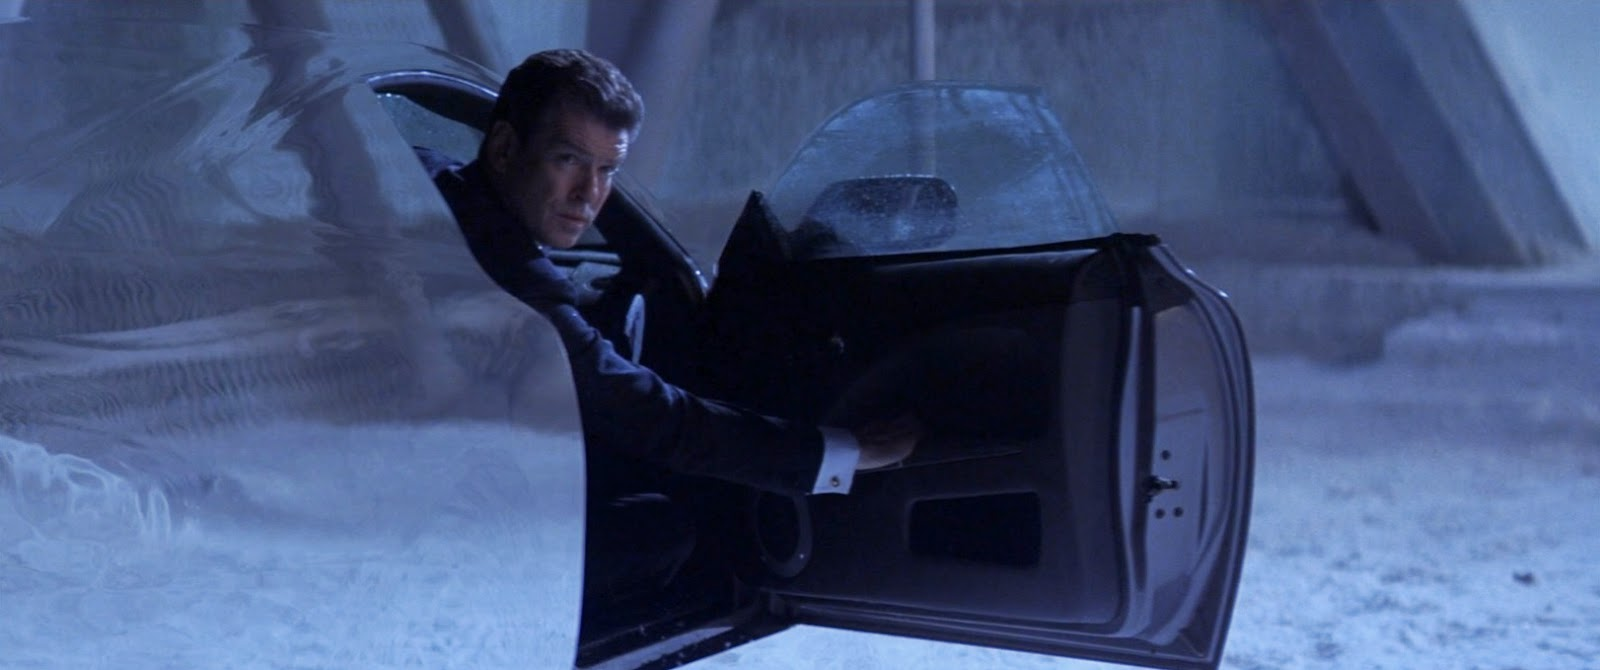 james bond die another day car - photo #25